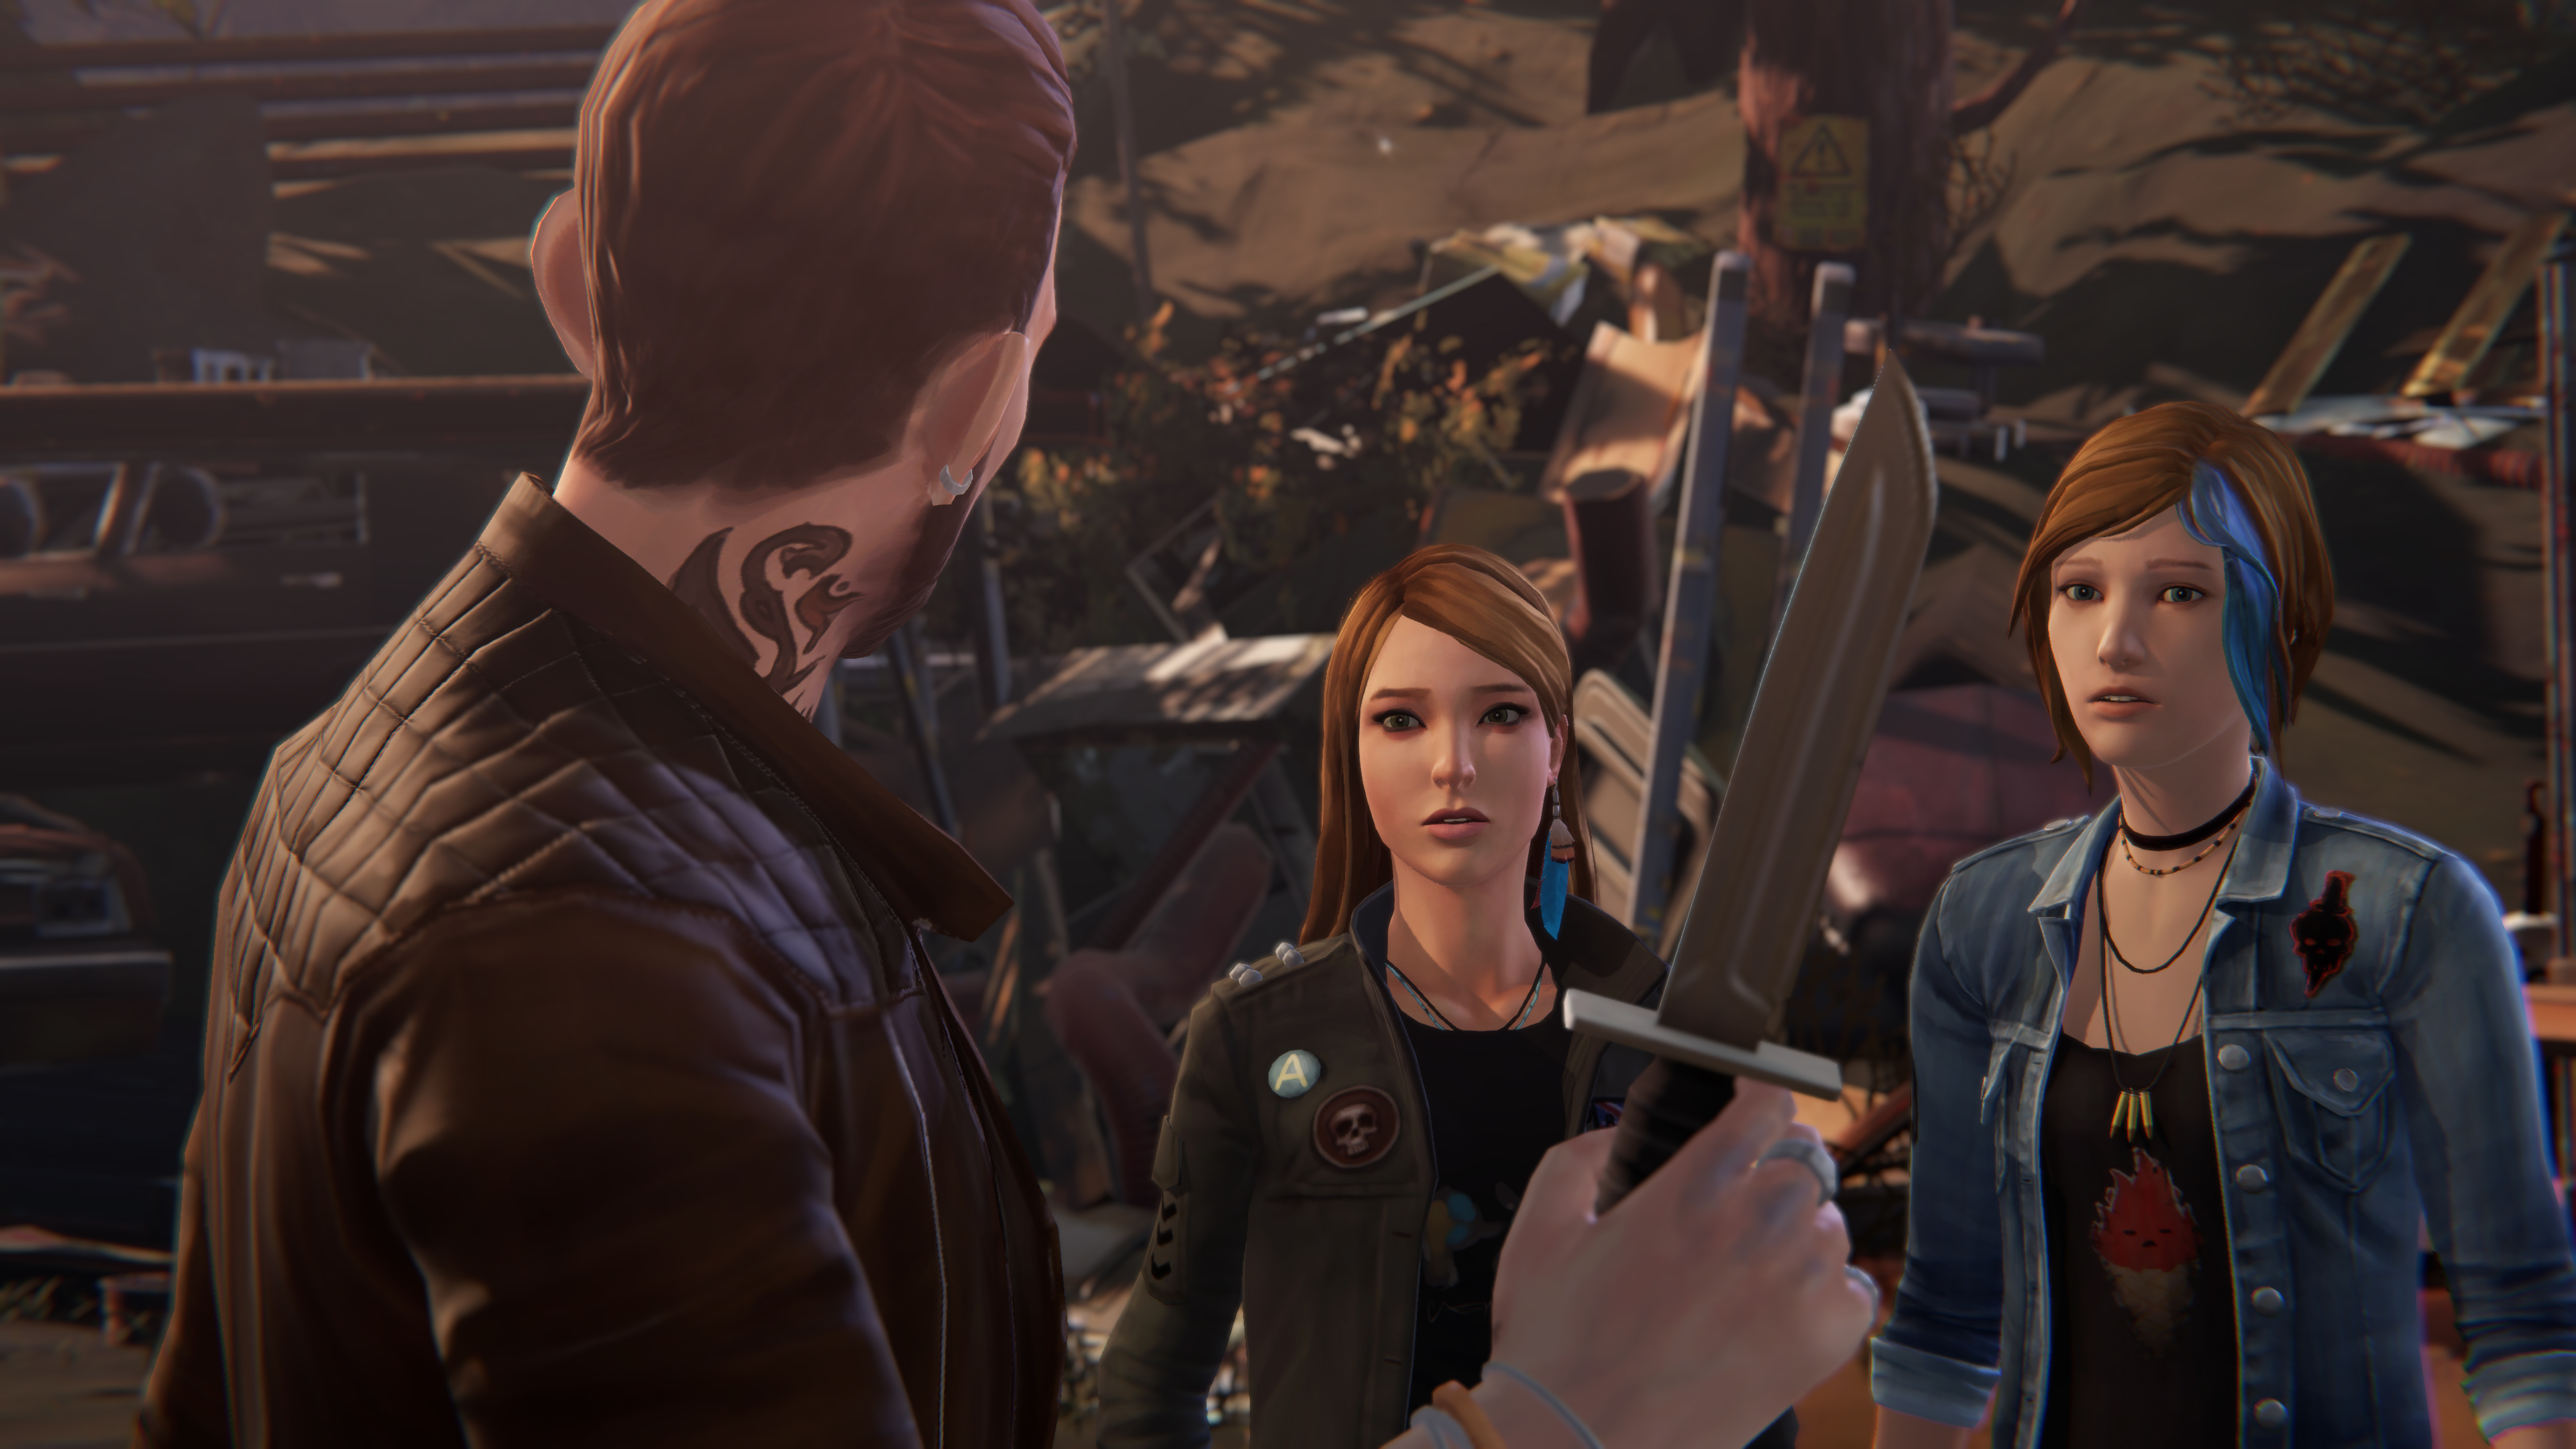 Before The Storm: Episode 3 (PS4) - a game of Knifey-Spoony is the least of Chloe's problems